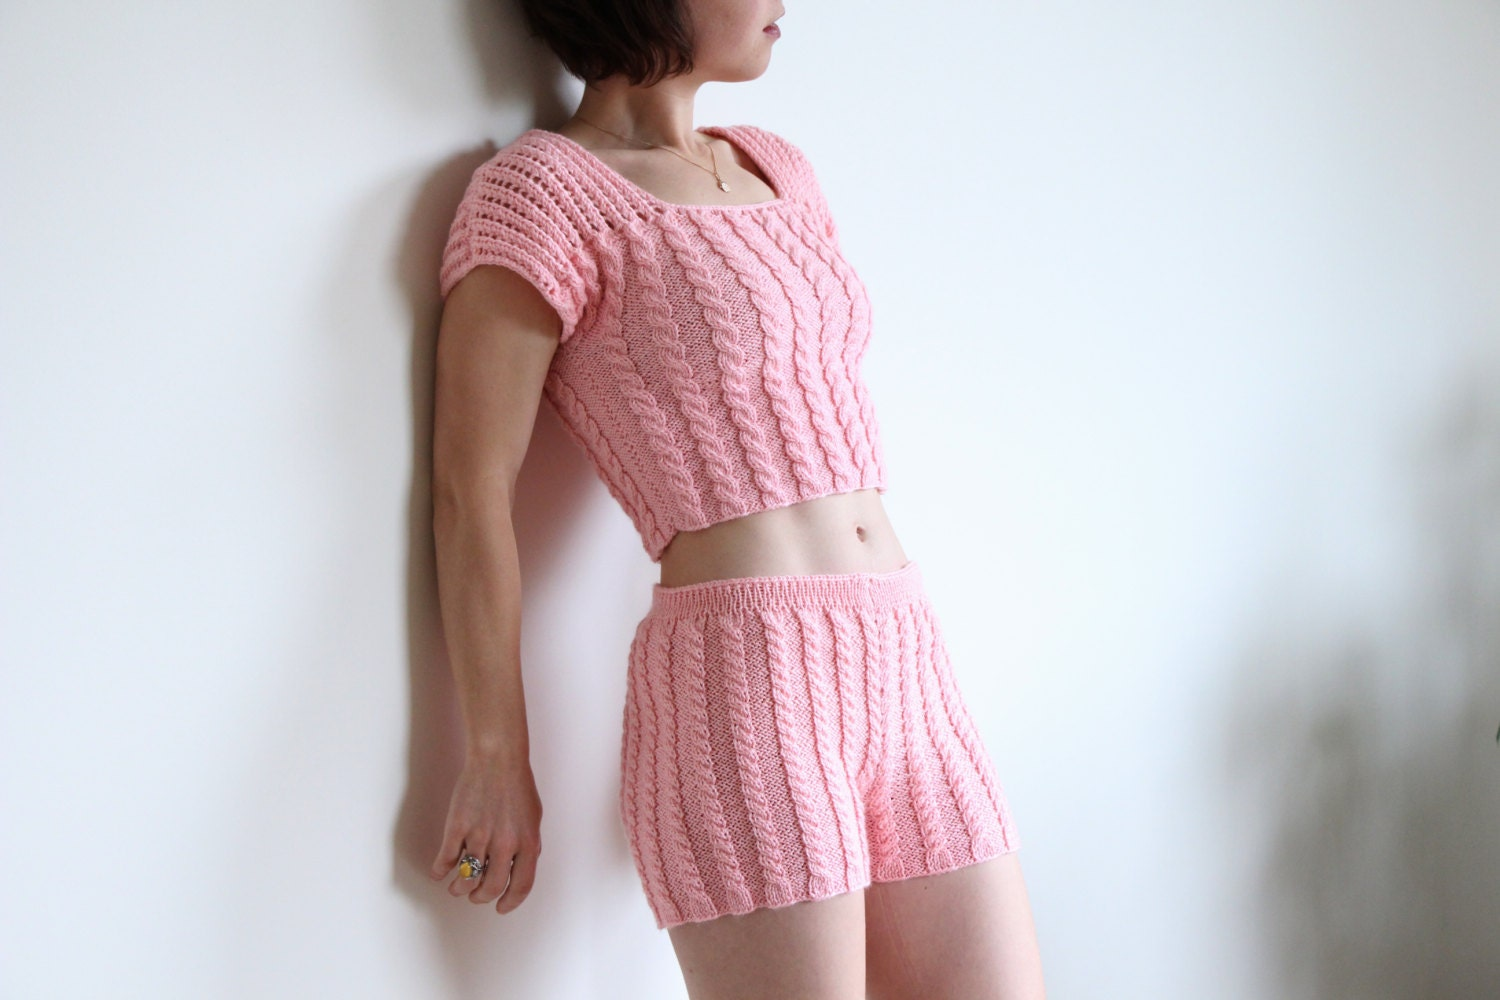 Knitting Pattern For Underwear : fashion knit lingerie women knitted underwear pink knitted